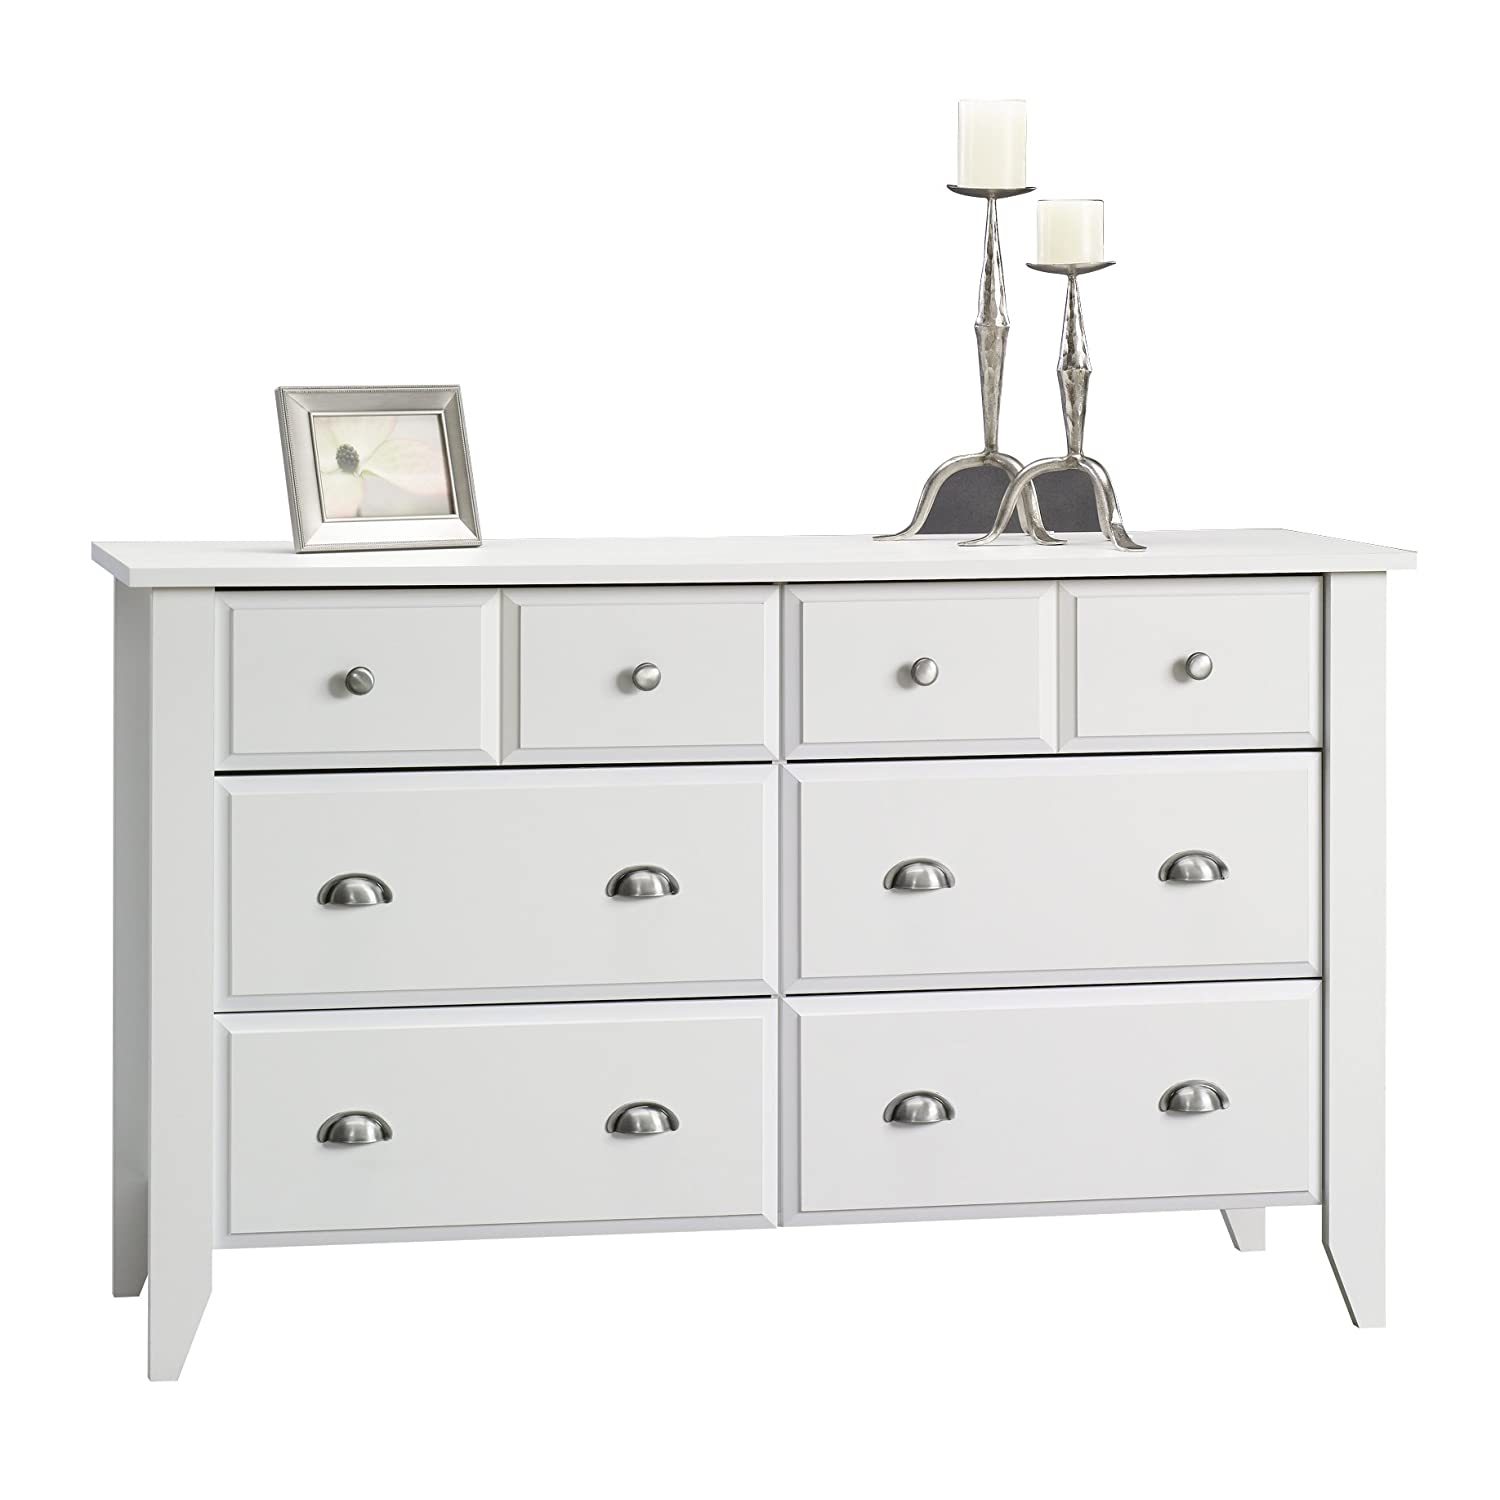 Amazon.com: Sauder Shoal Creek Dresser, Soft White Finish: Kitchen ...